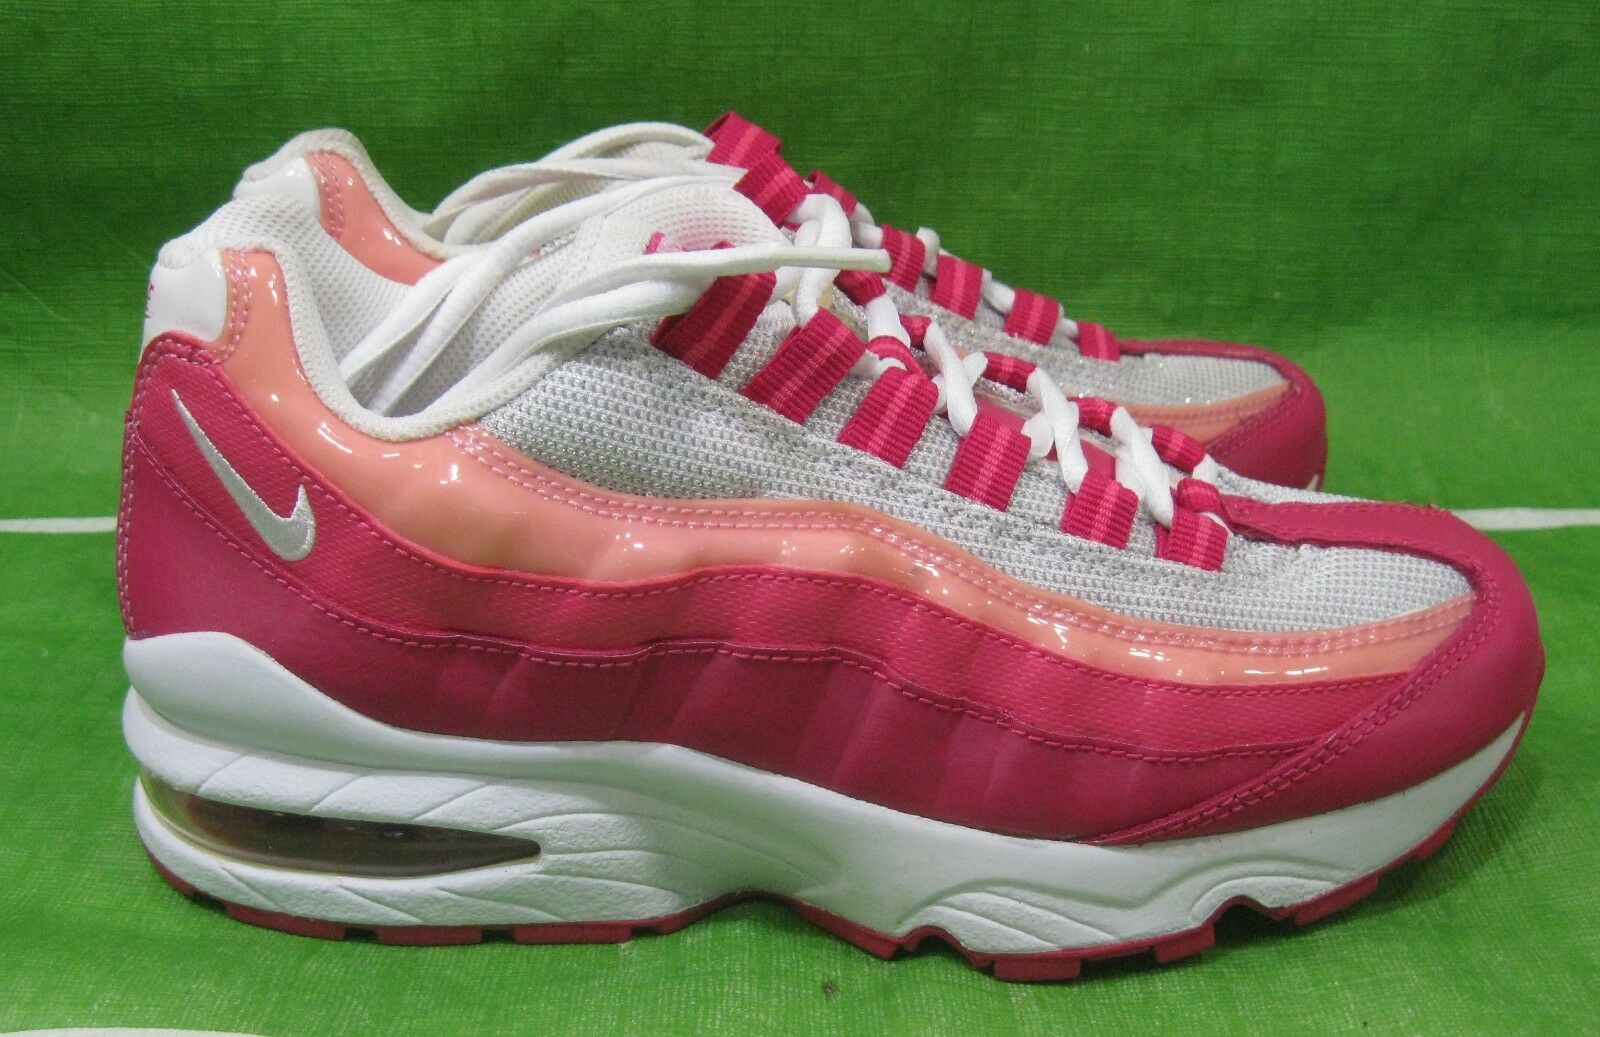 new Nike Air Max '95 Le (Gs) Girls Running Shoes 310830-166 White/Cherry Size 5Y